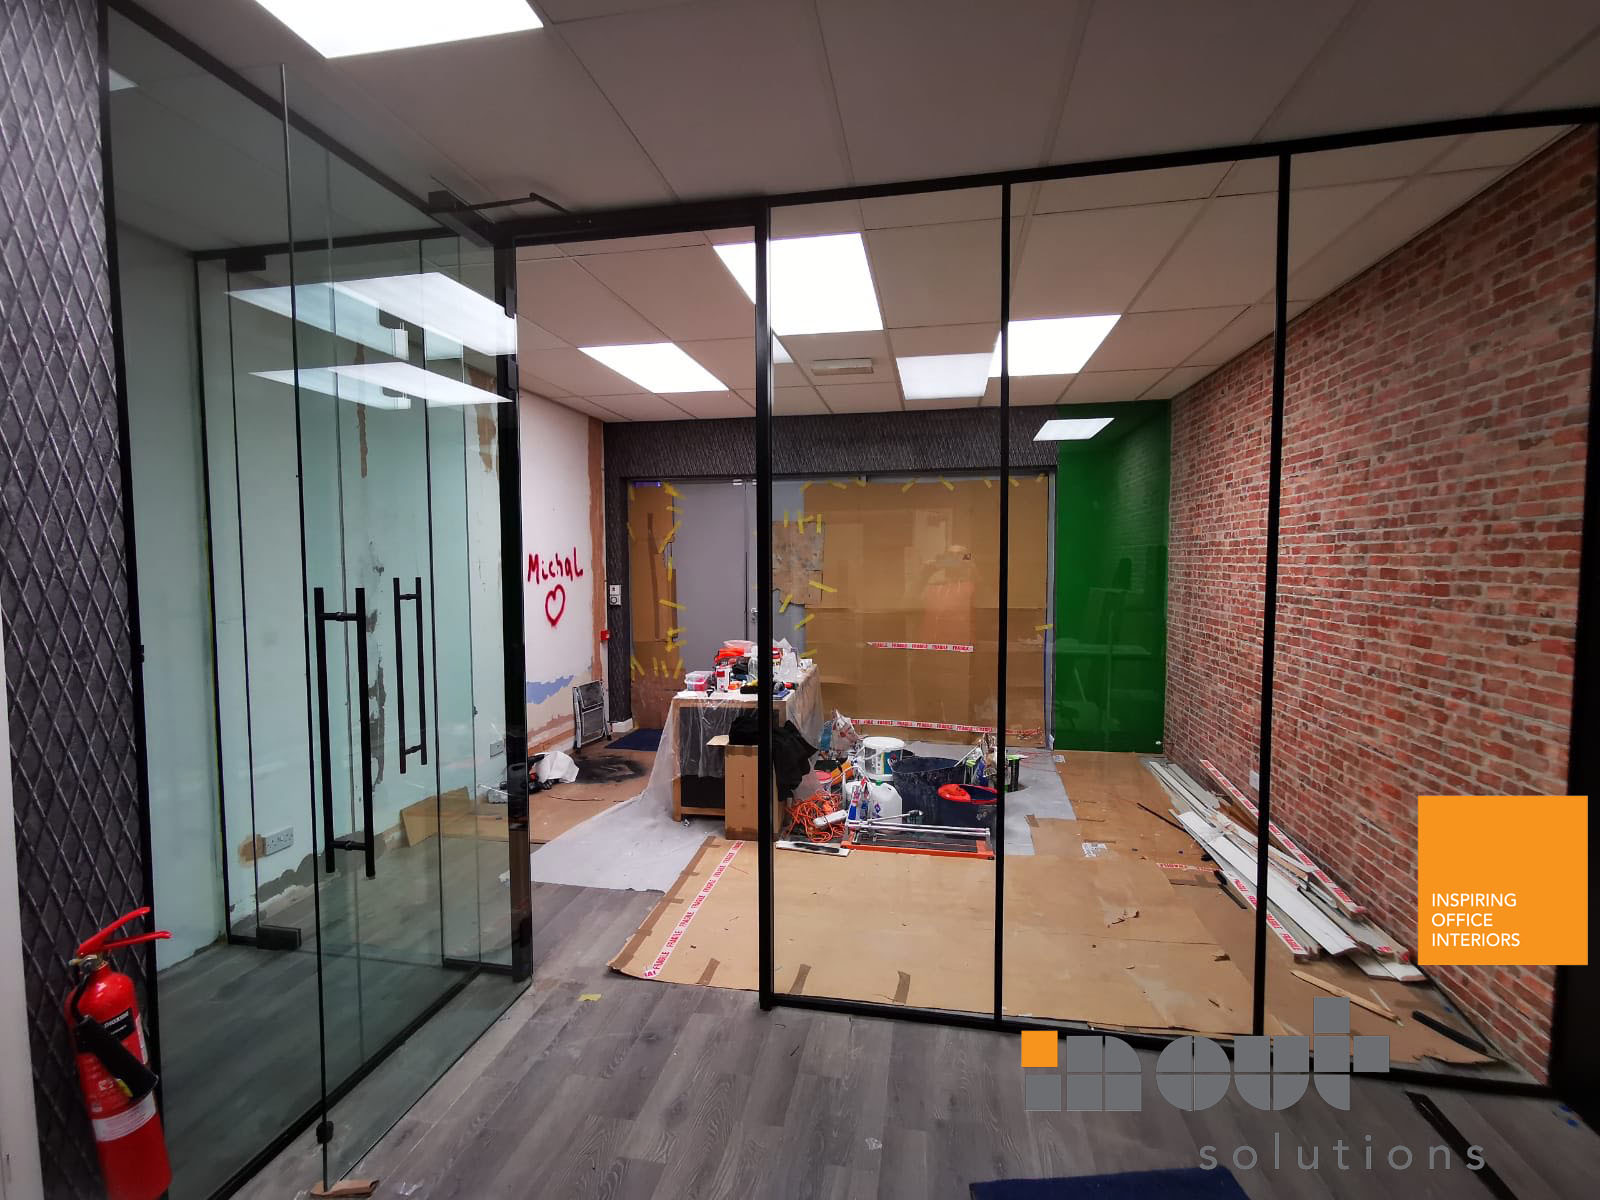 Glass partition glass walls glass doors glazed office partitions art deco glass walls Leicester Leicestershire industrial glass walls industrial glass partitions